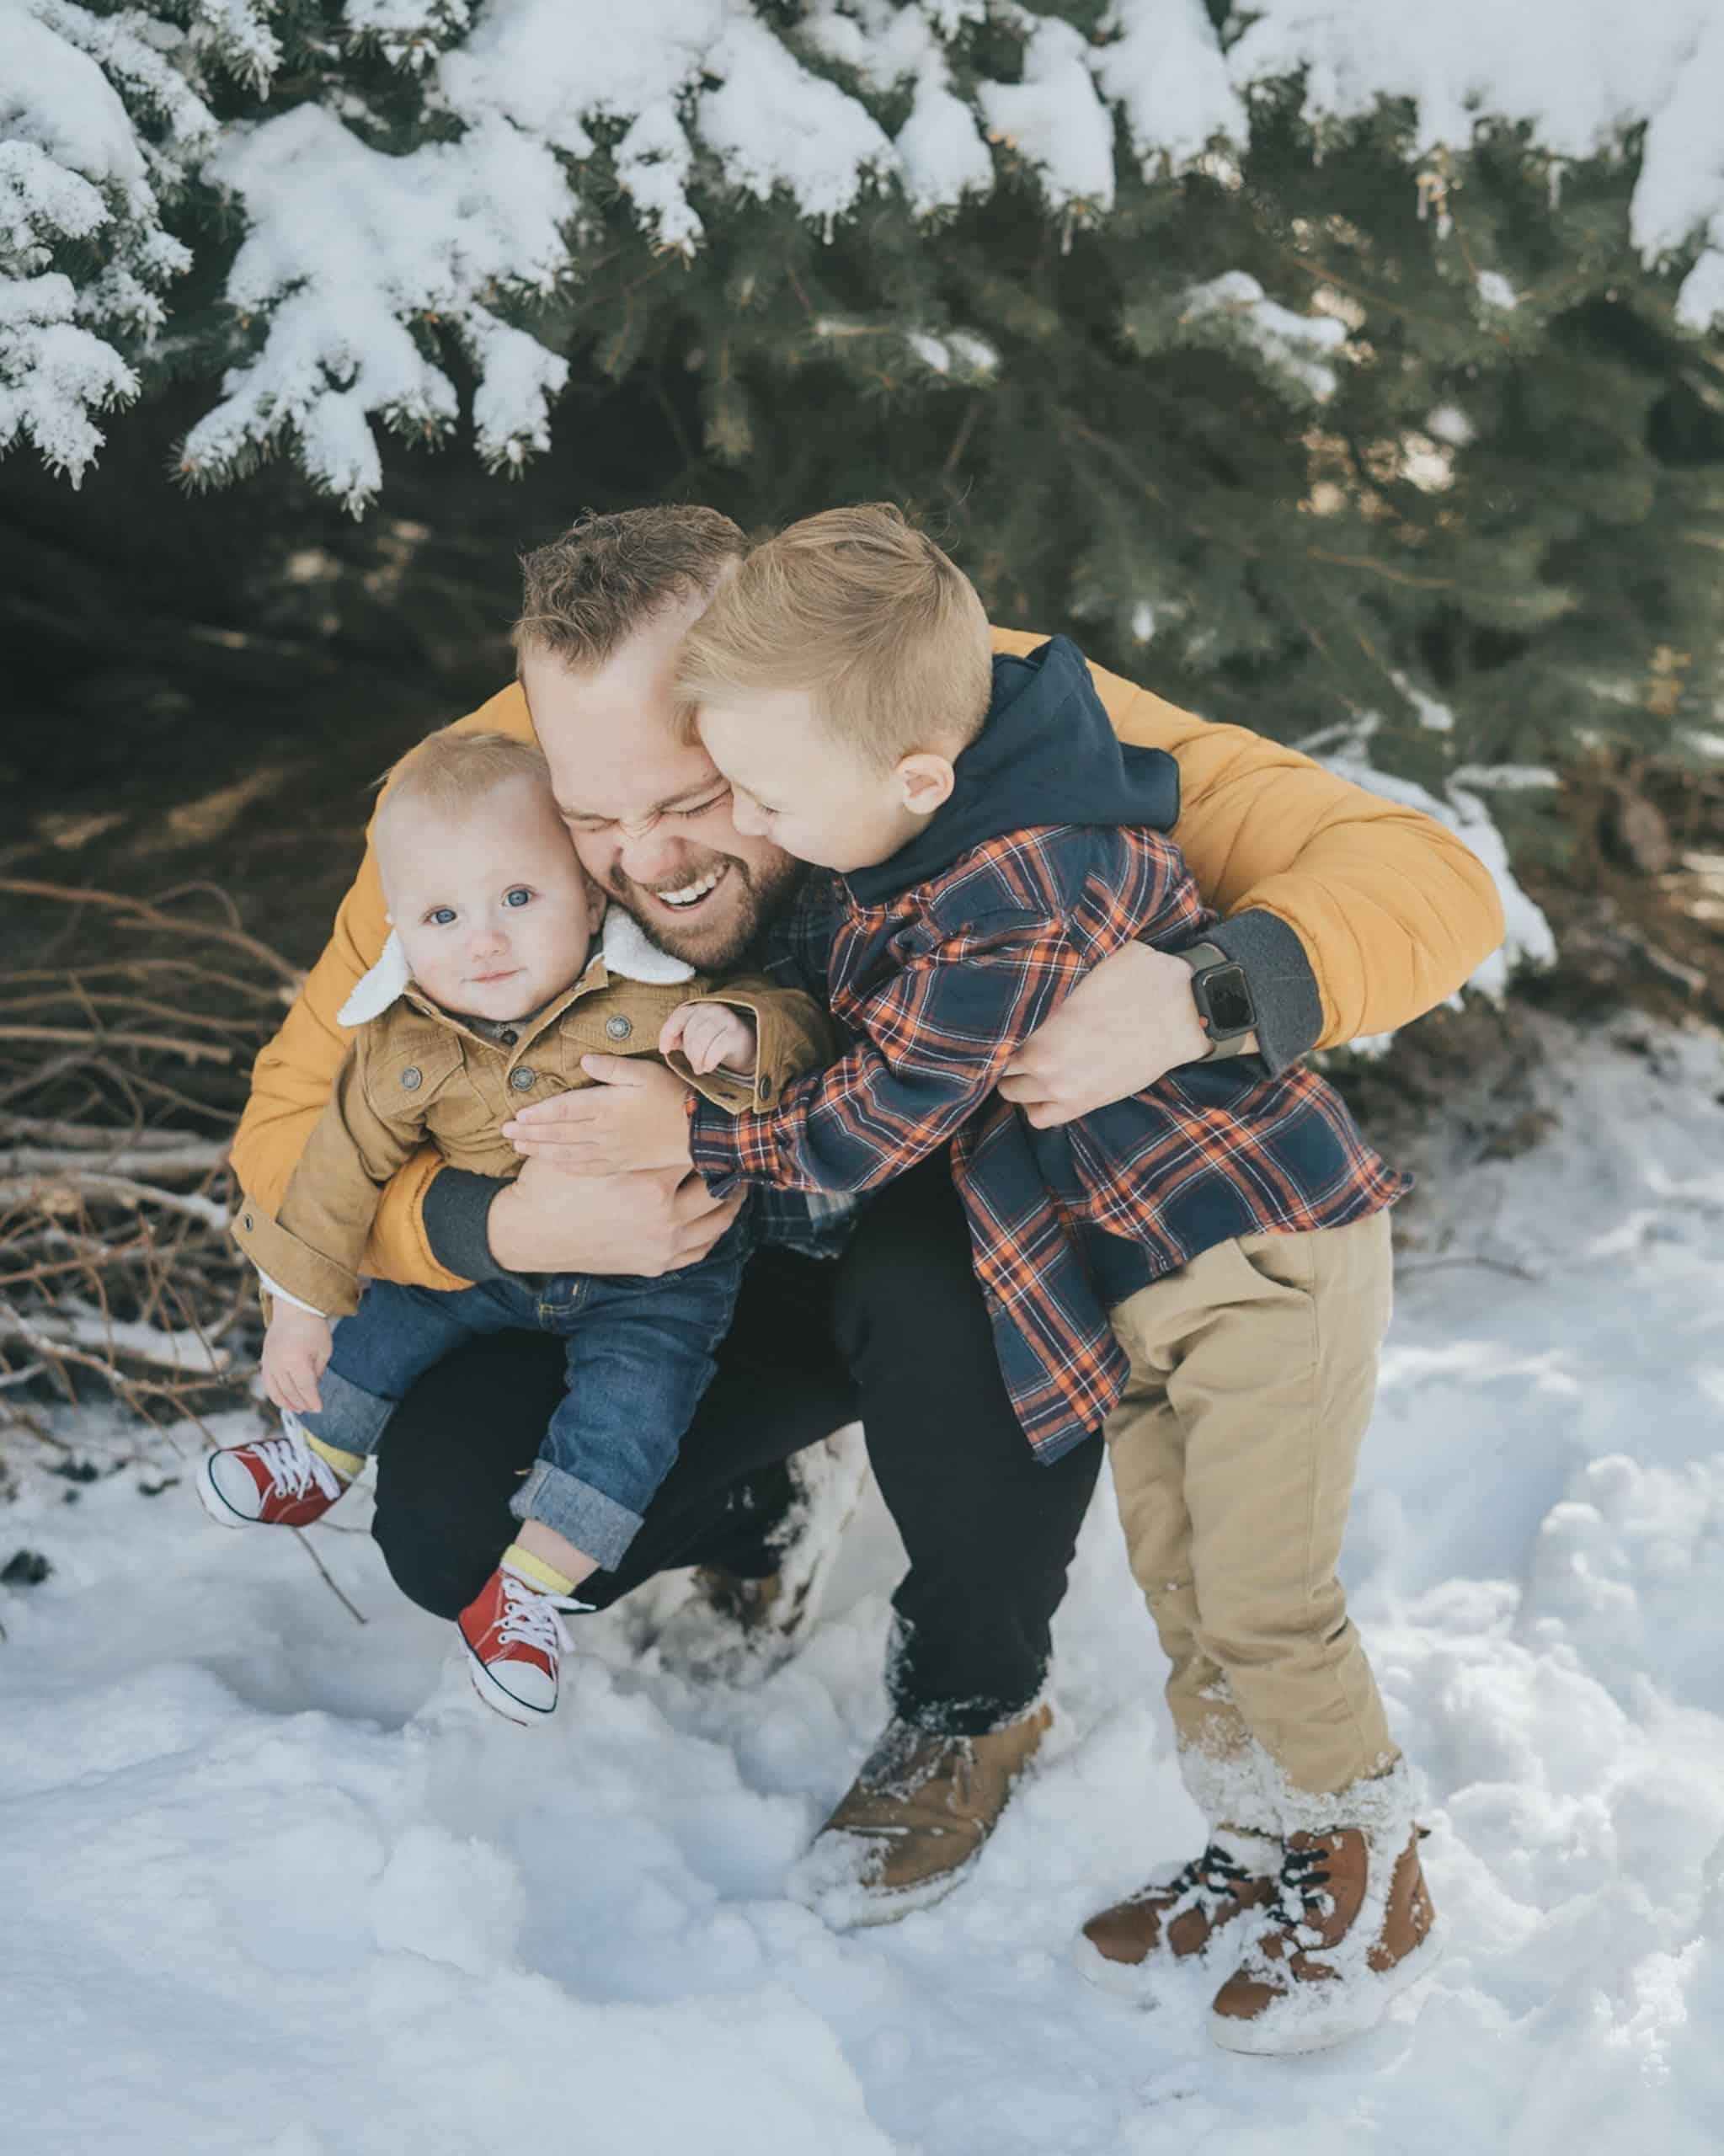 Andrew hugging his children in the snow